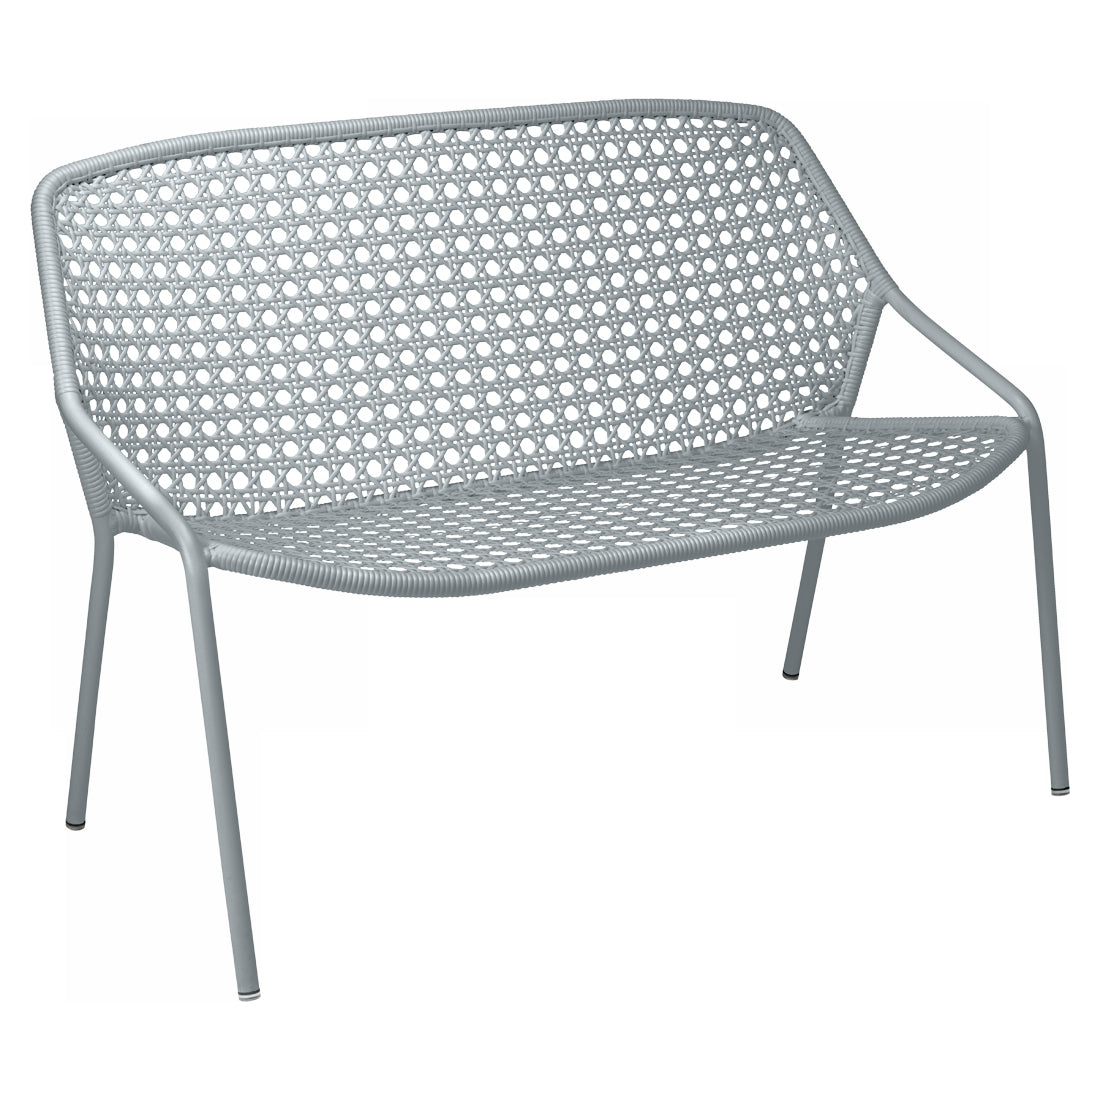 FERMOB | Croisette | Bench | 4 Colour Options | Made for you - Available in 4 to 6 weeks